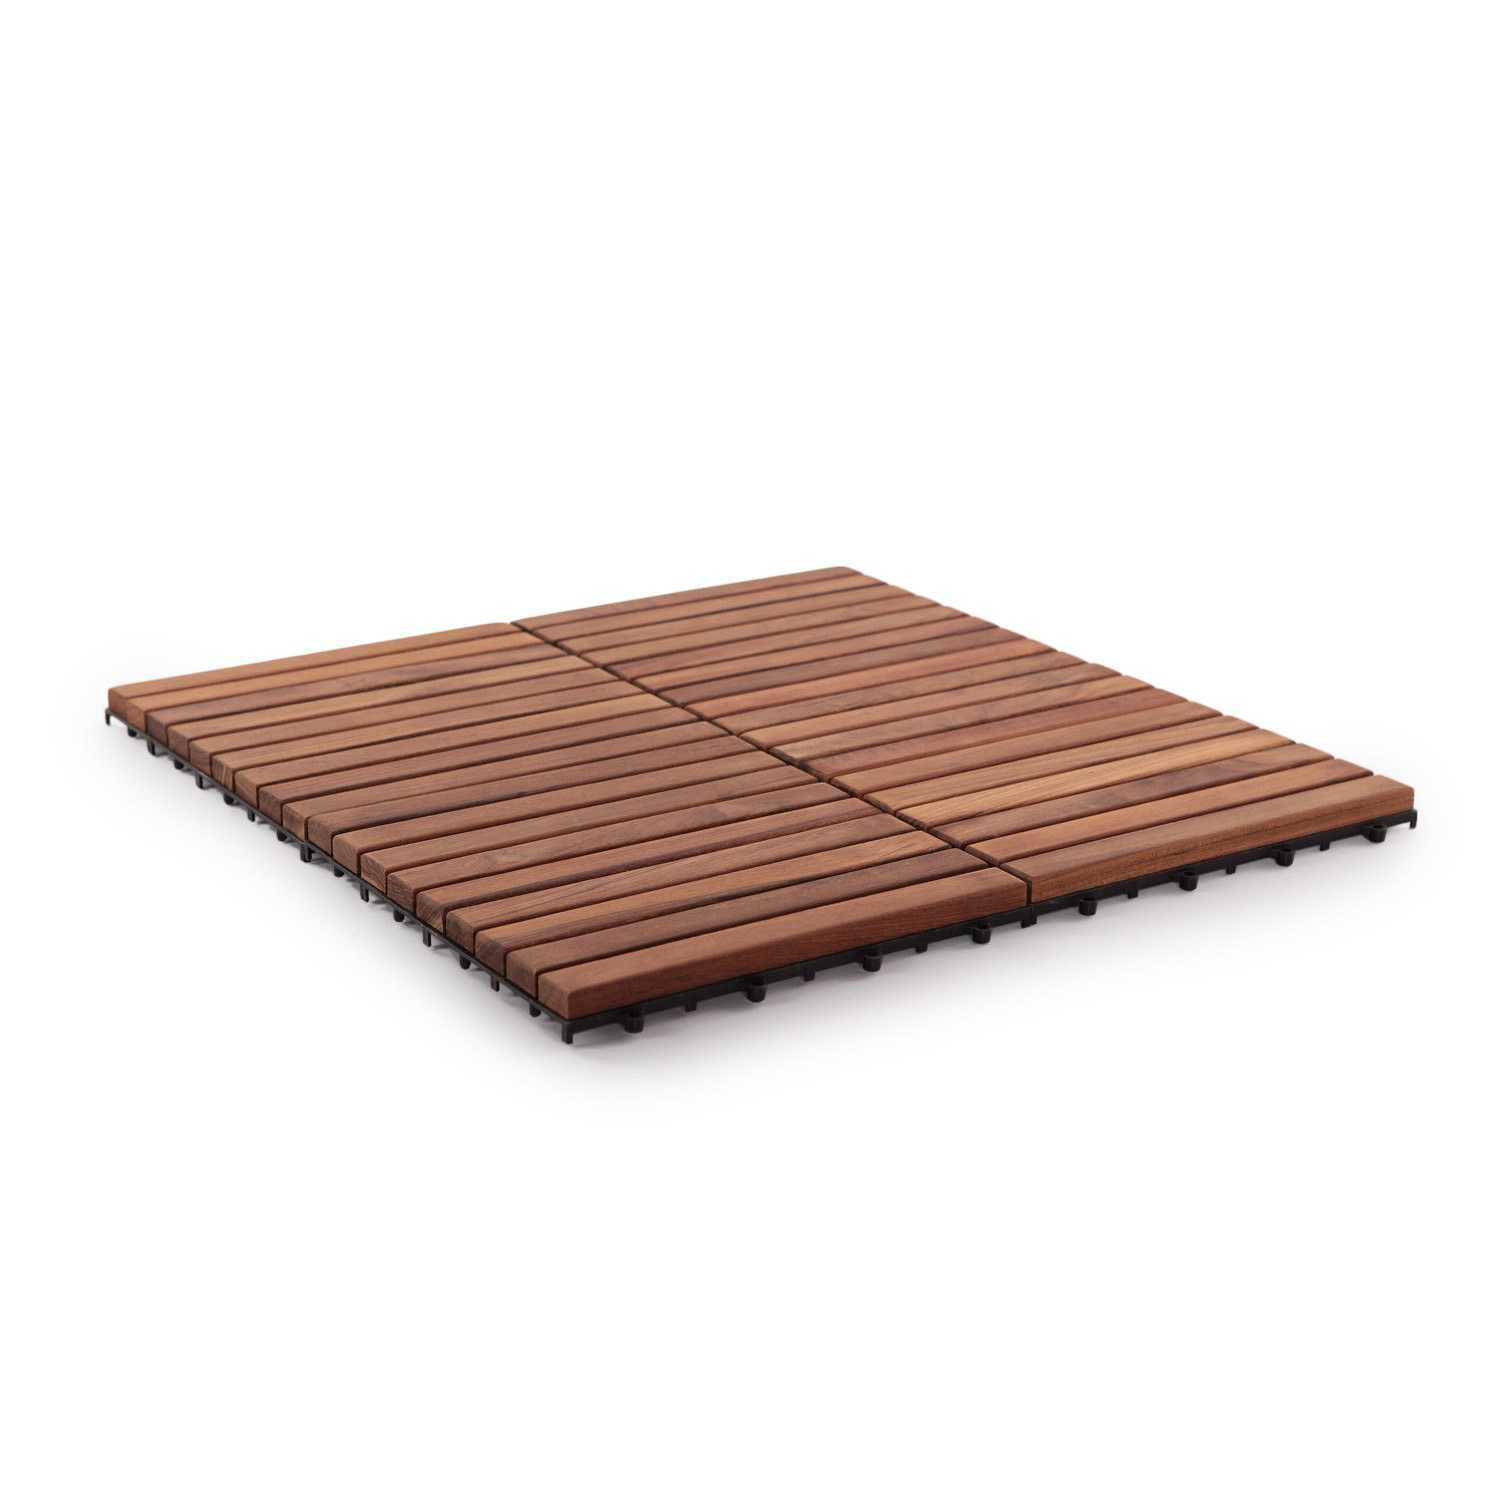 Nordic Style Oiled Teak Wood 9-slat Square Interlocking Tile Set (Pack of 10)